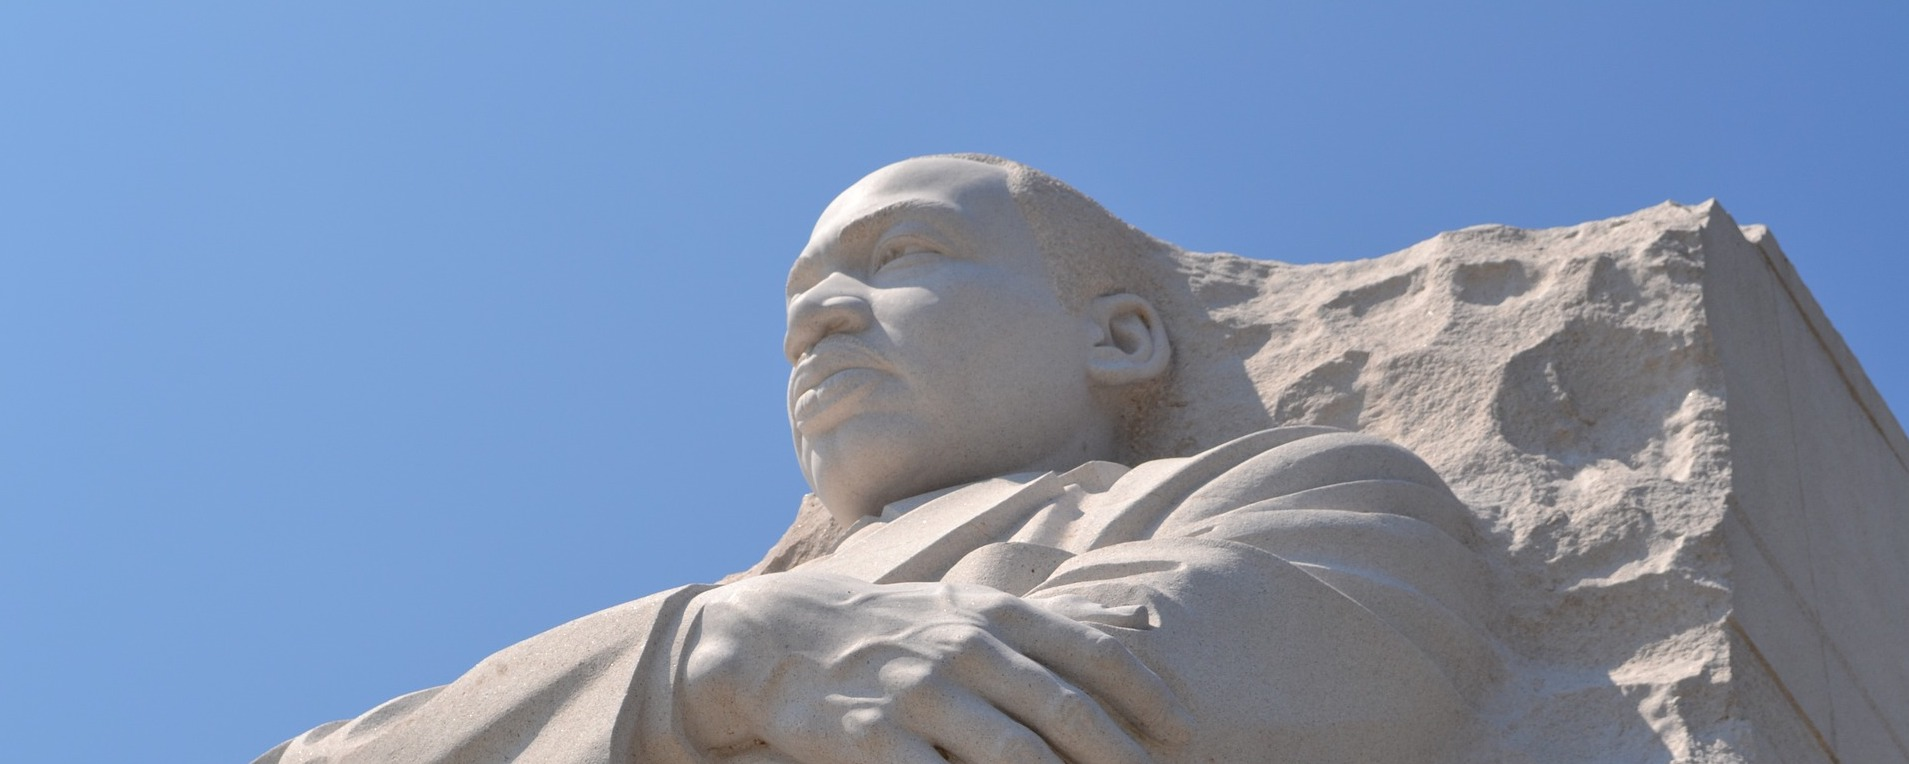 Laying the Axe to the Root of Injustice